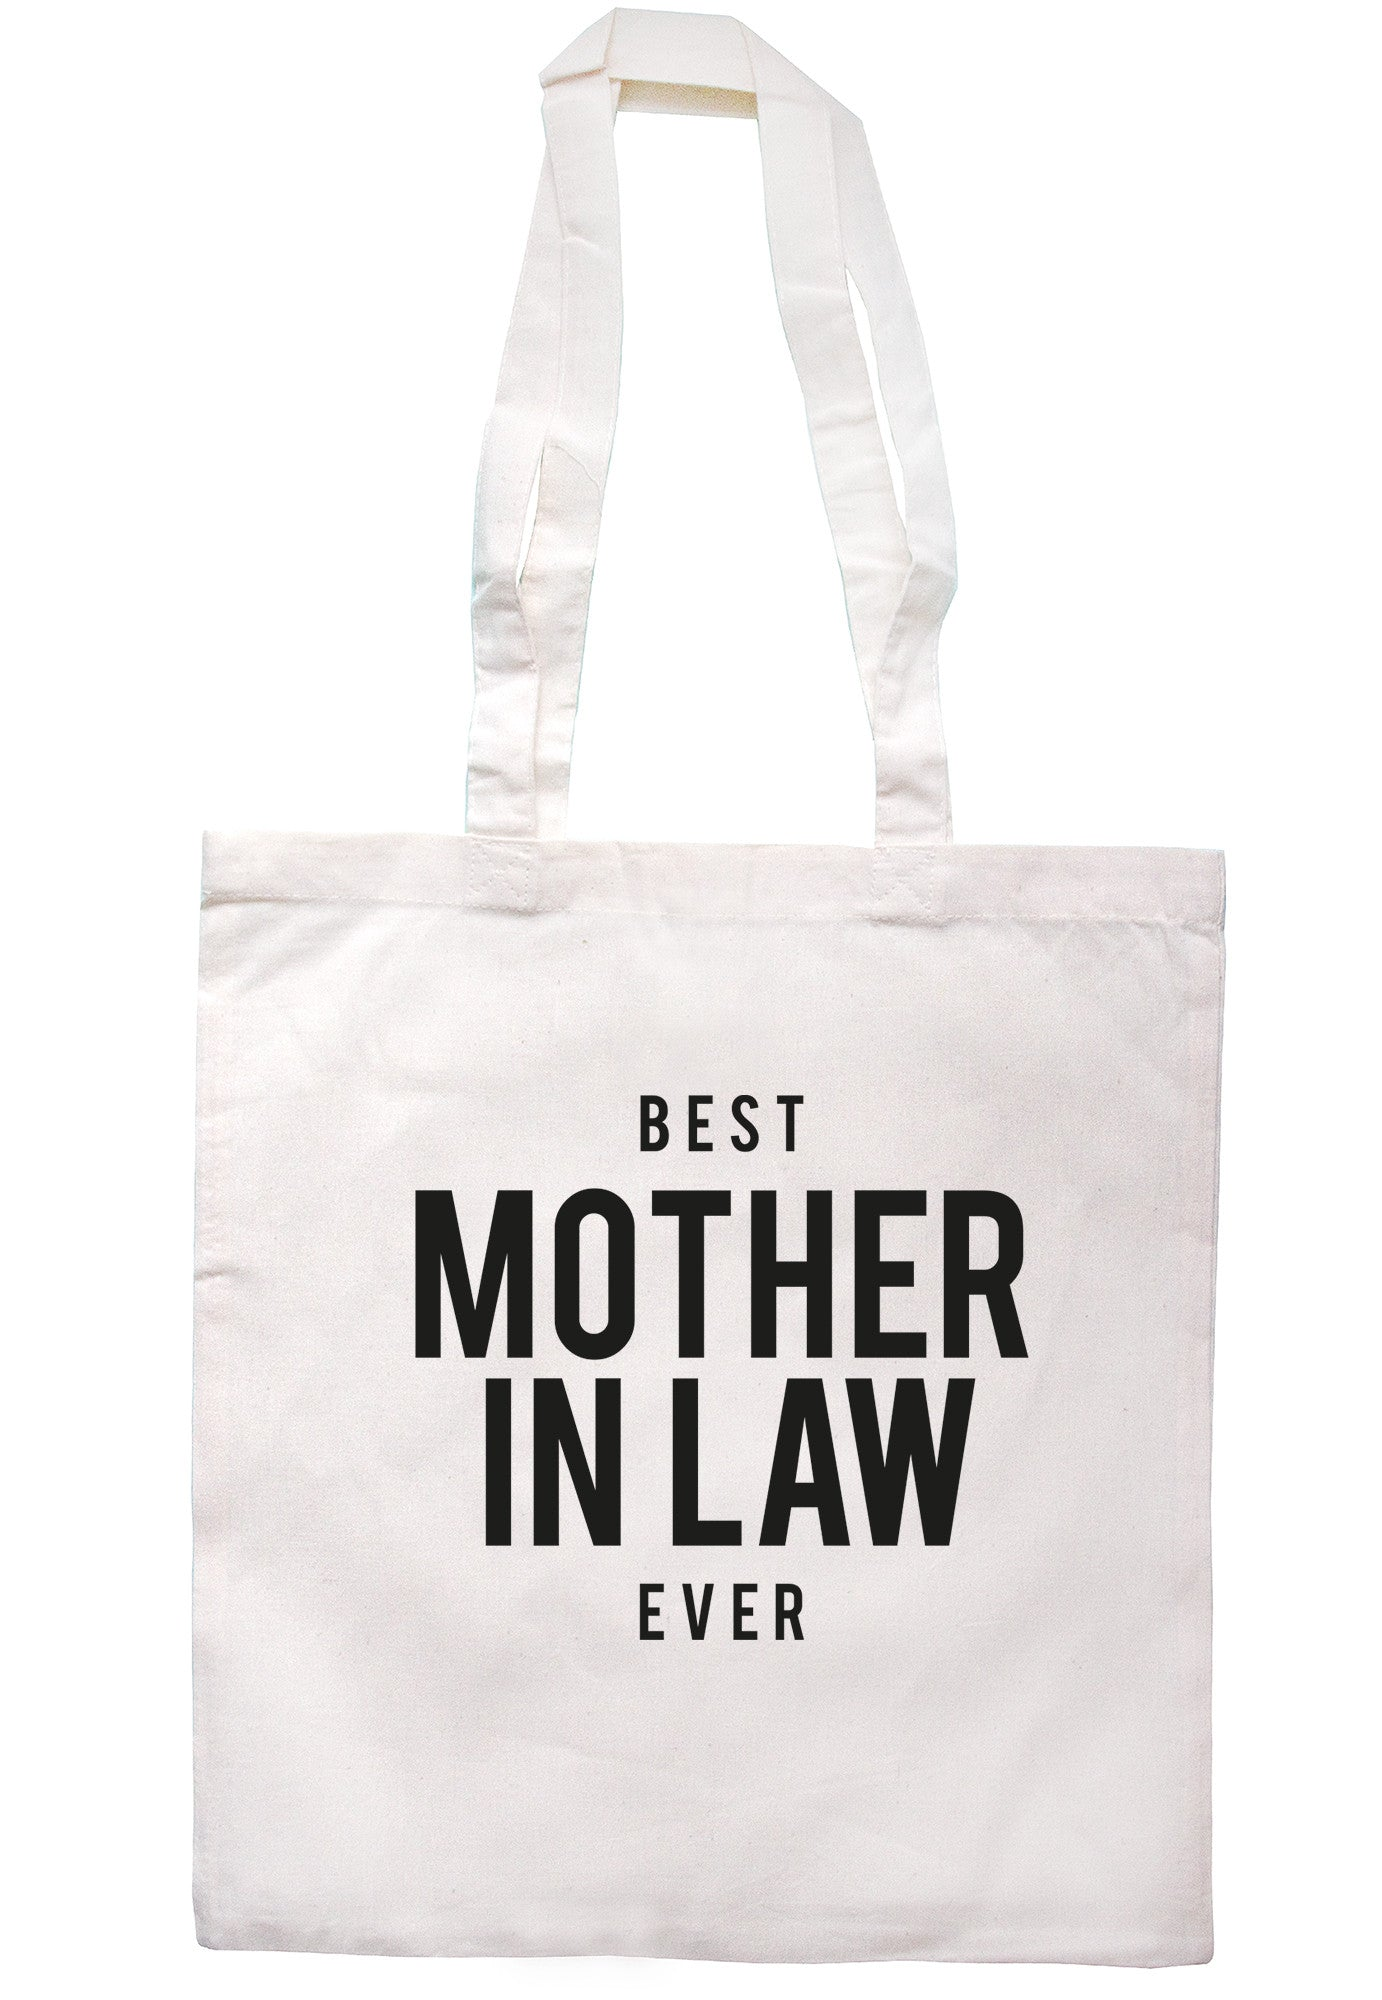 Best Mother In Law Ever Tote Bag TB1258